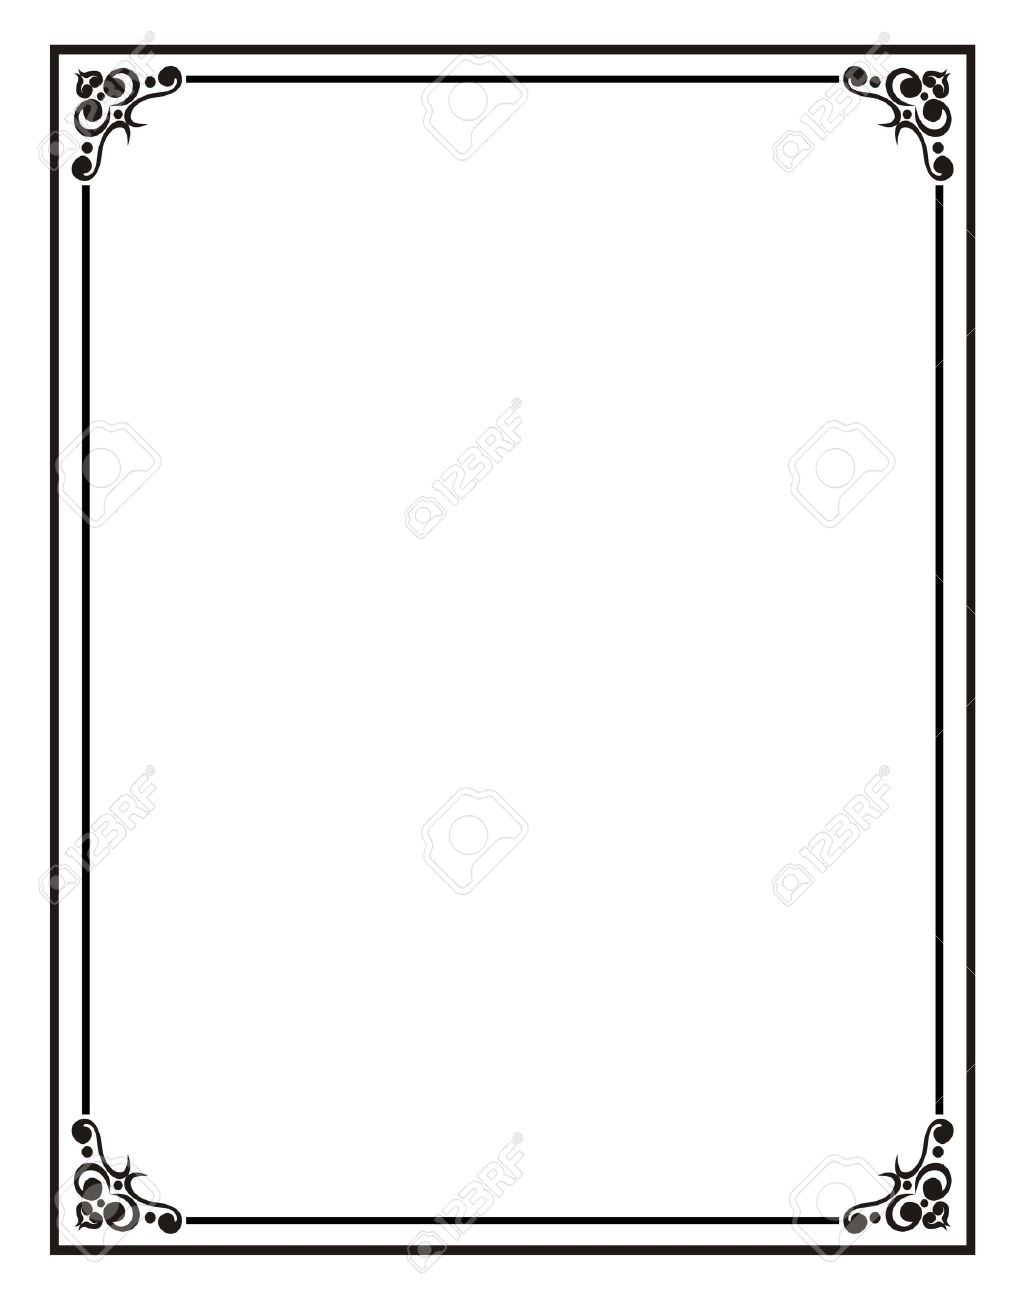 Blank Frame Stock Photo, Picture And Royalty Free Image. Image 7463567.